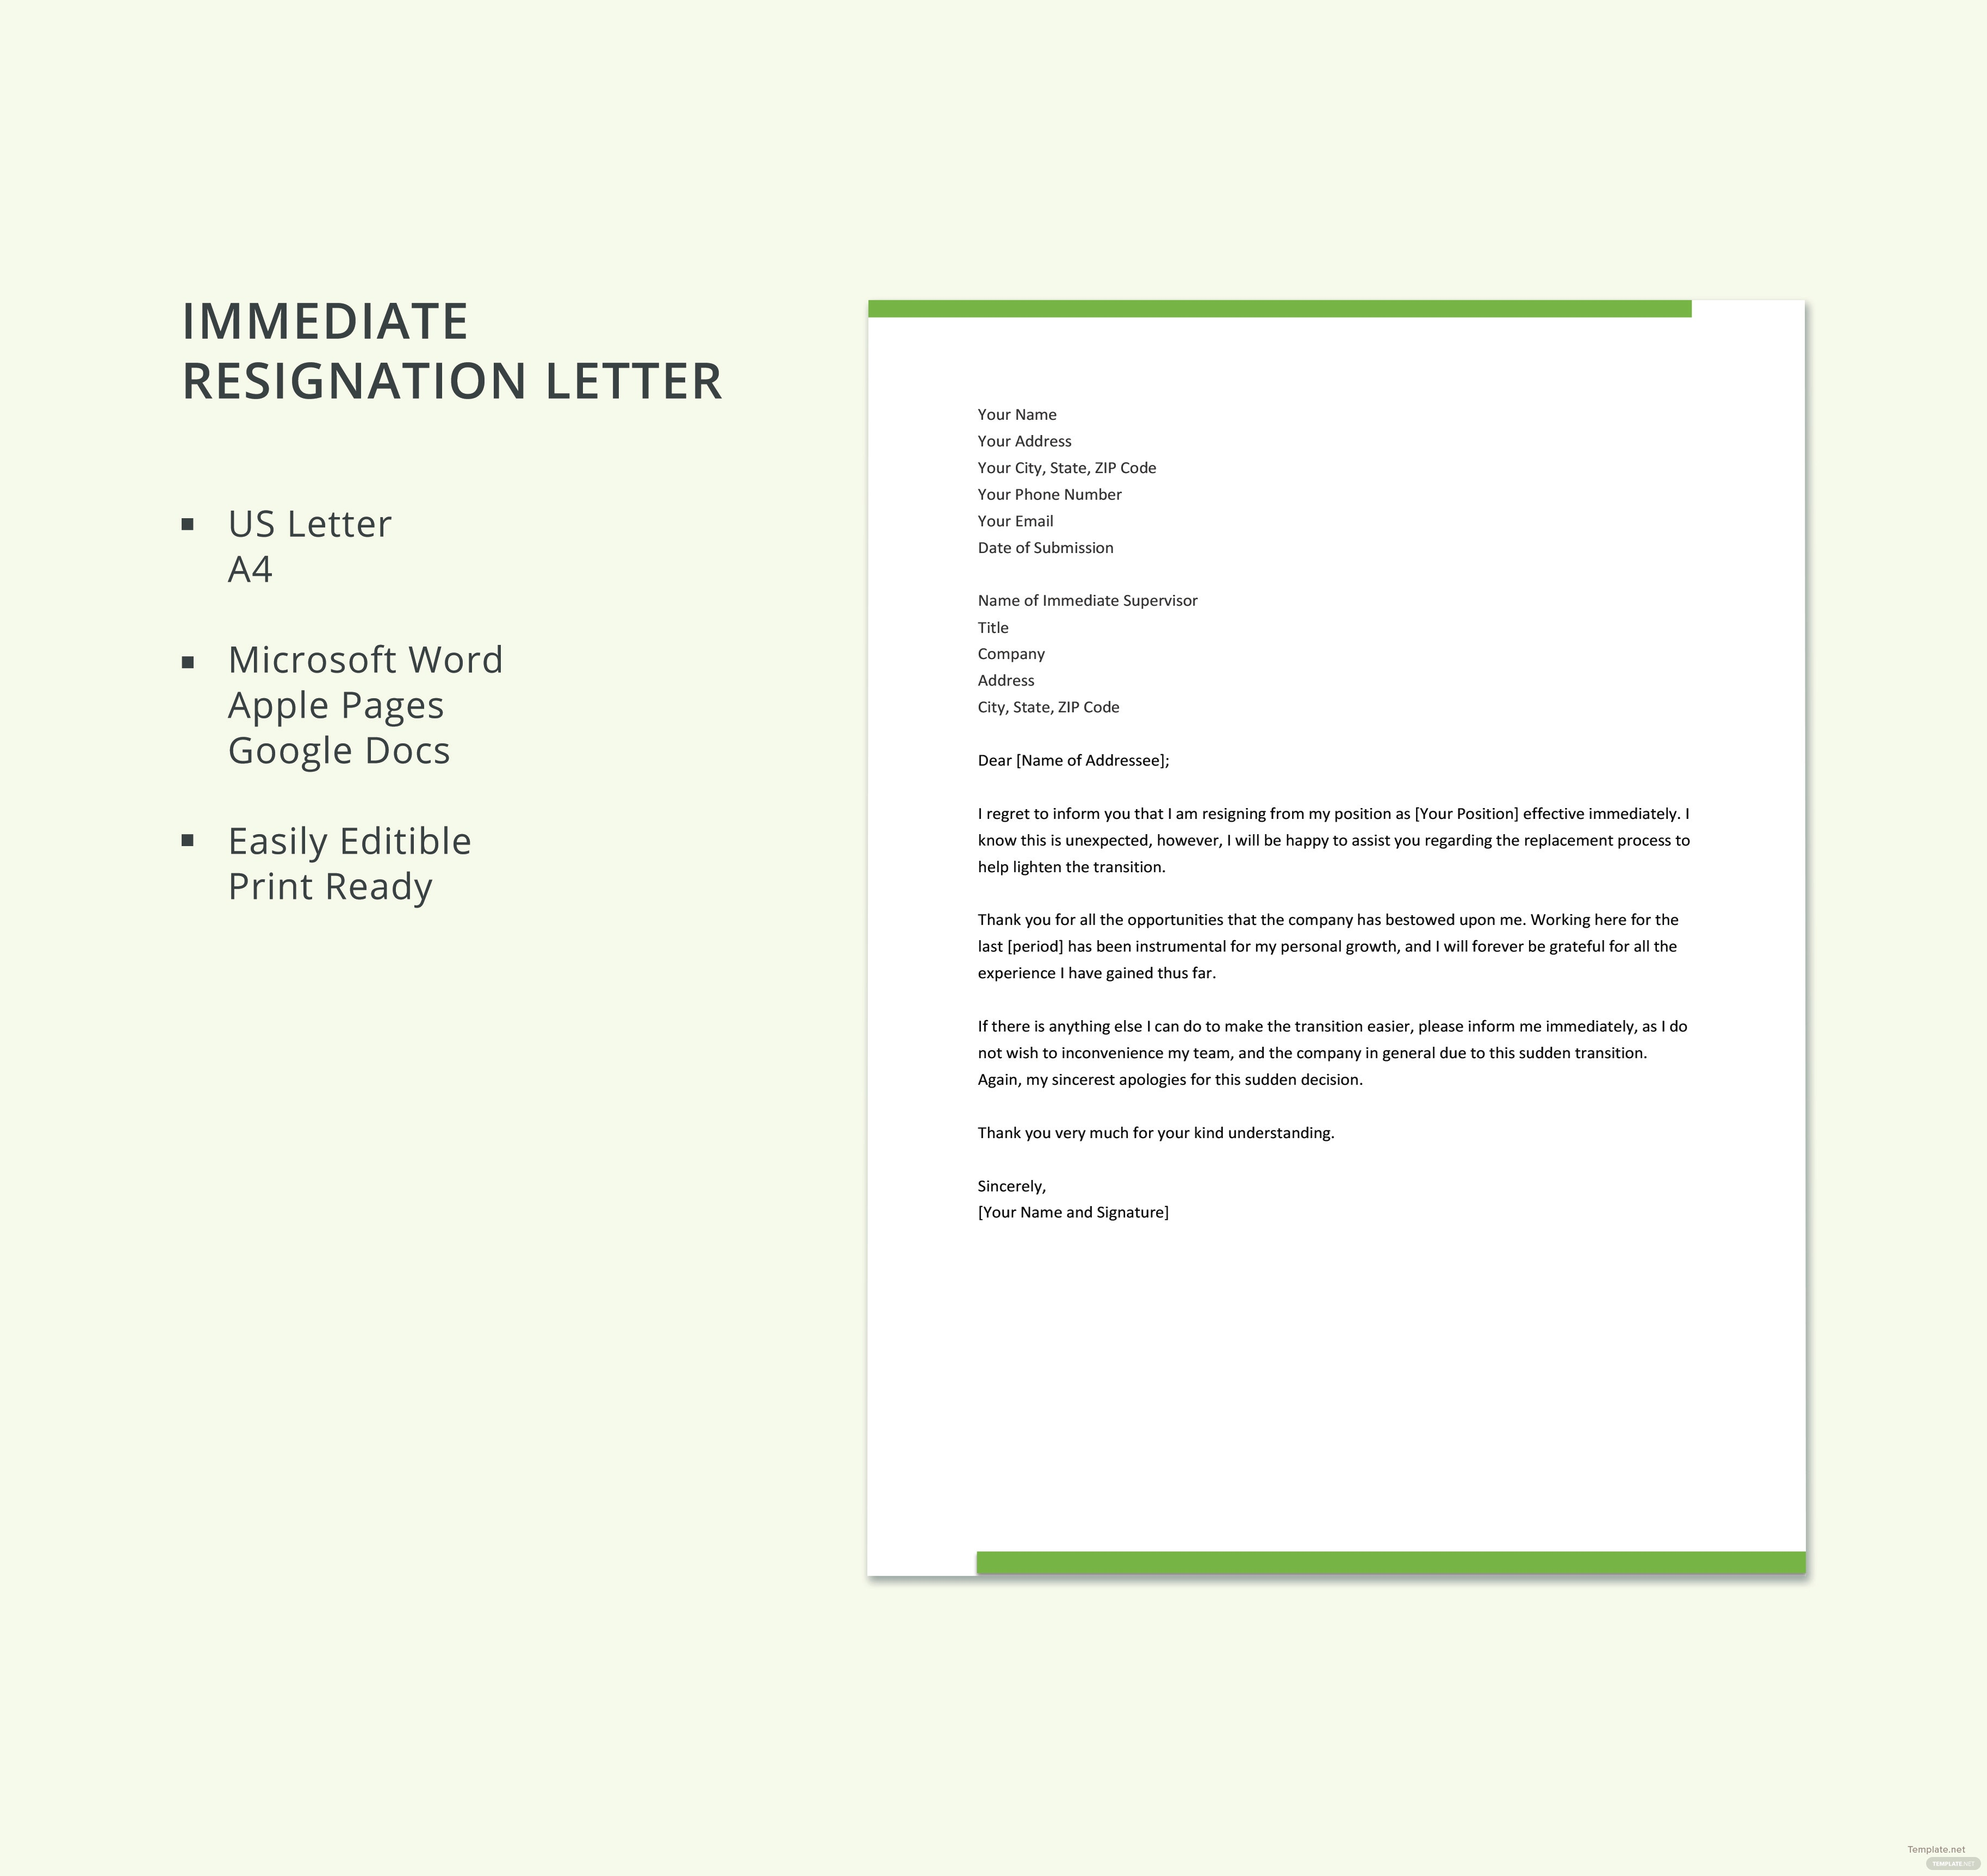 Immediate resignation letter template in microsoft word apple immediate resignation letter template aljukfo Images